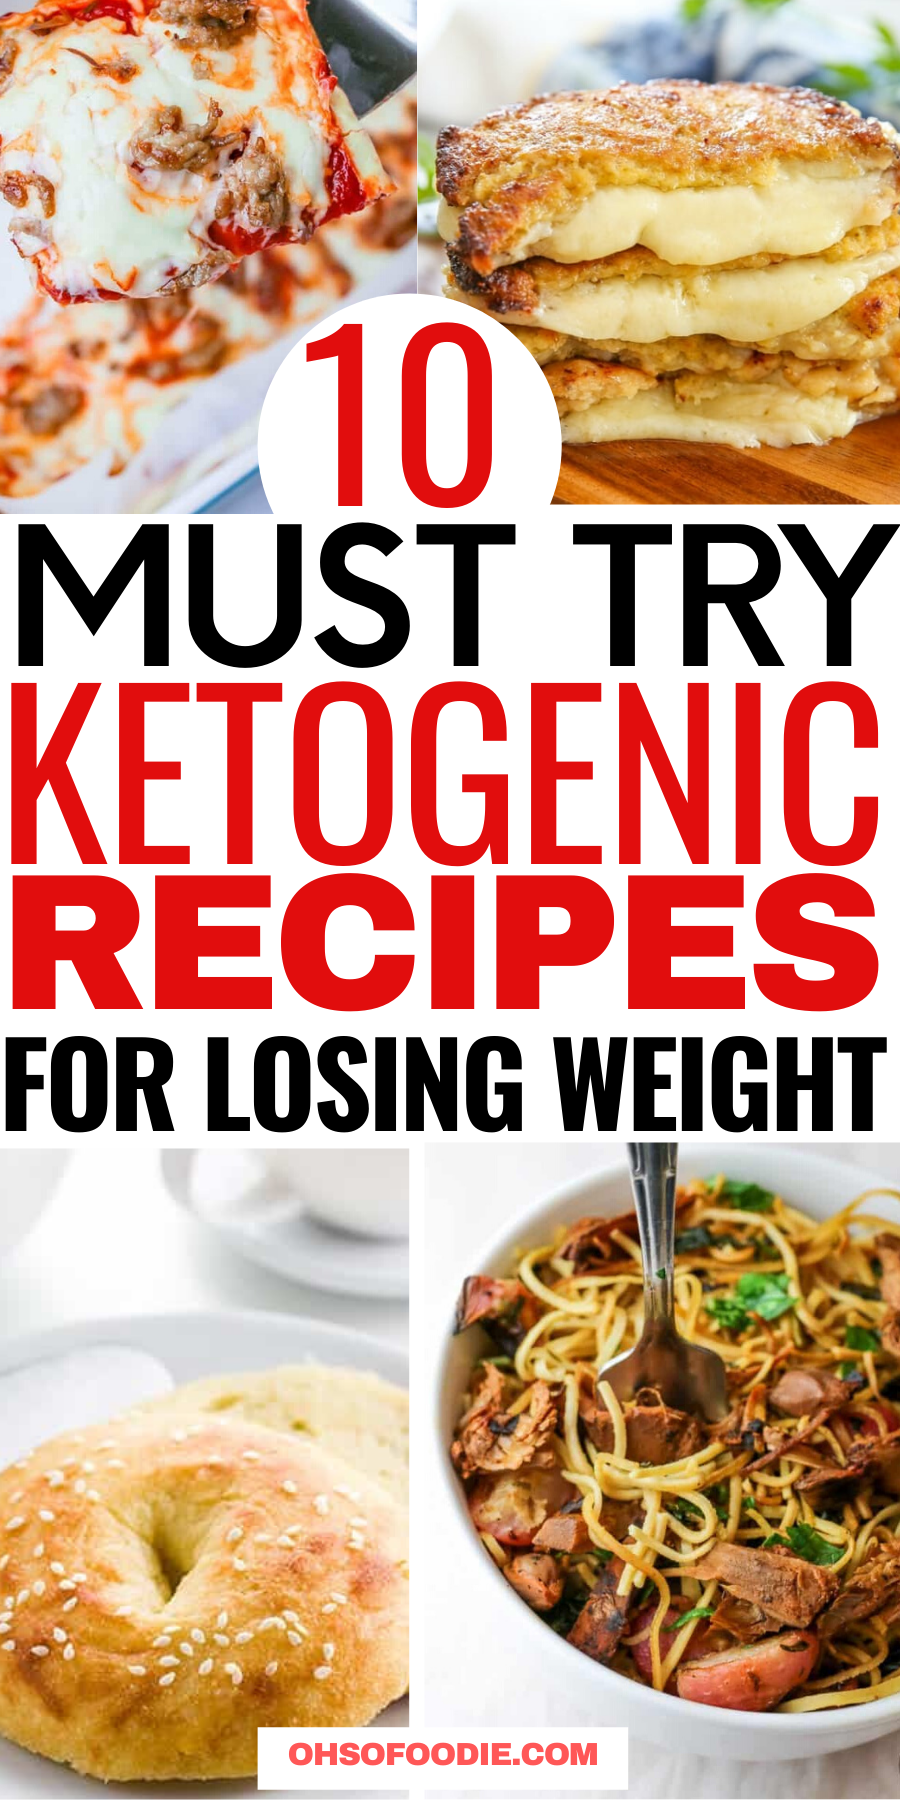 10 Must Try Ketogenic Recipes For Losing Weight that make the perfect keto main dishes, keto breakfast ideas, keto lunch ideas, keto dinner ideas, and keto snacks! #ketomeals #ketodiet #ketorecipes #ketomaindishes #ketolunchideas